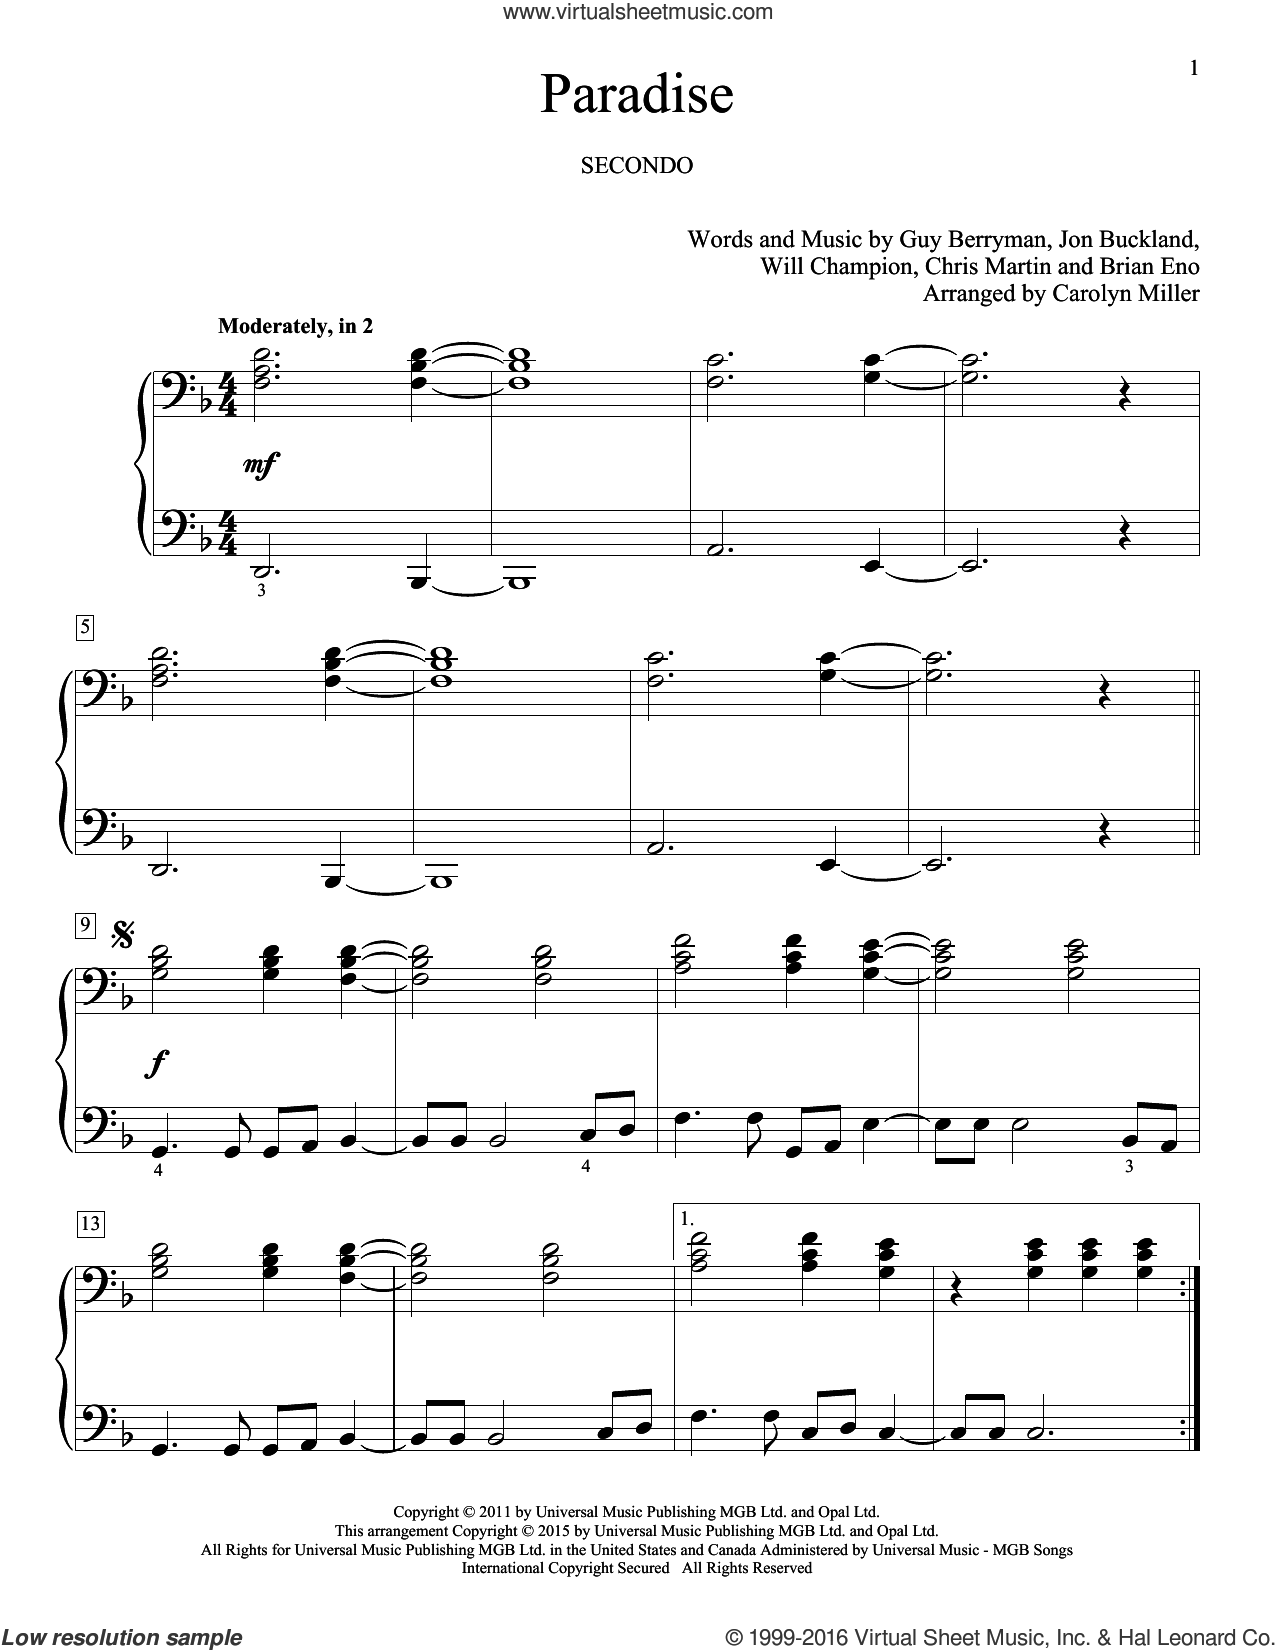 Paradise sheet music for piano four hands by Chris Martin, Carolyn Miller, Coldplay, Brian Eno, Guy Berryman and Will Champion, intermediate skill level